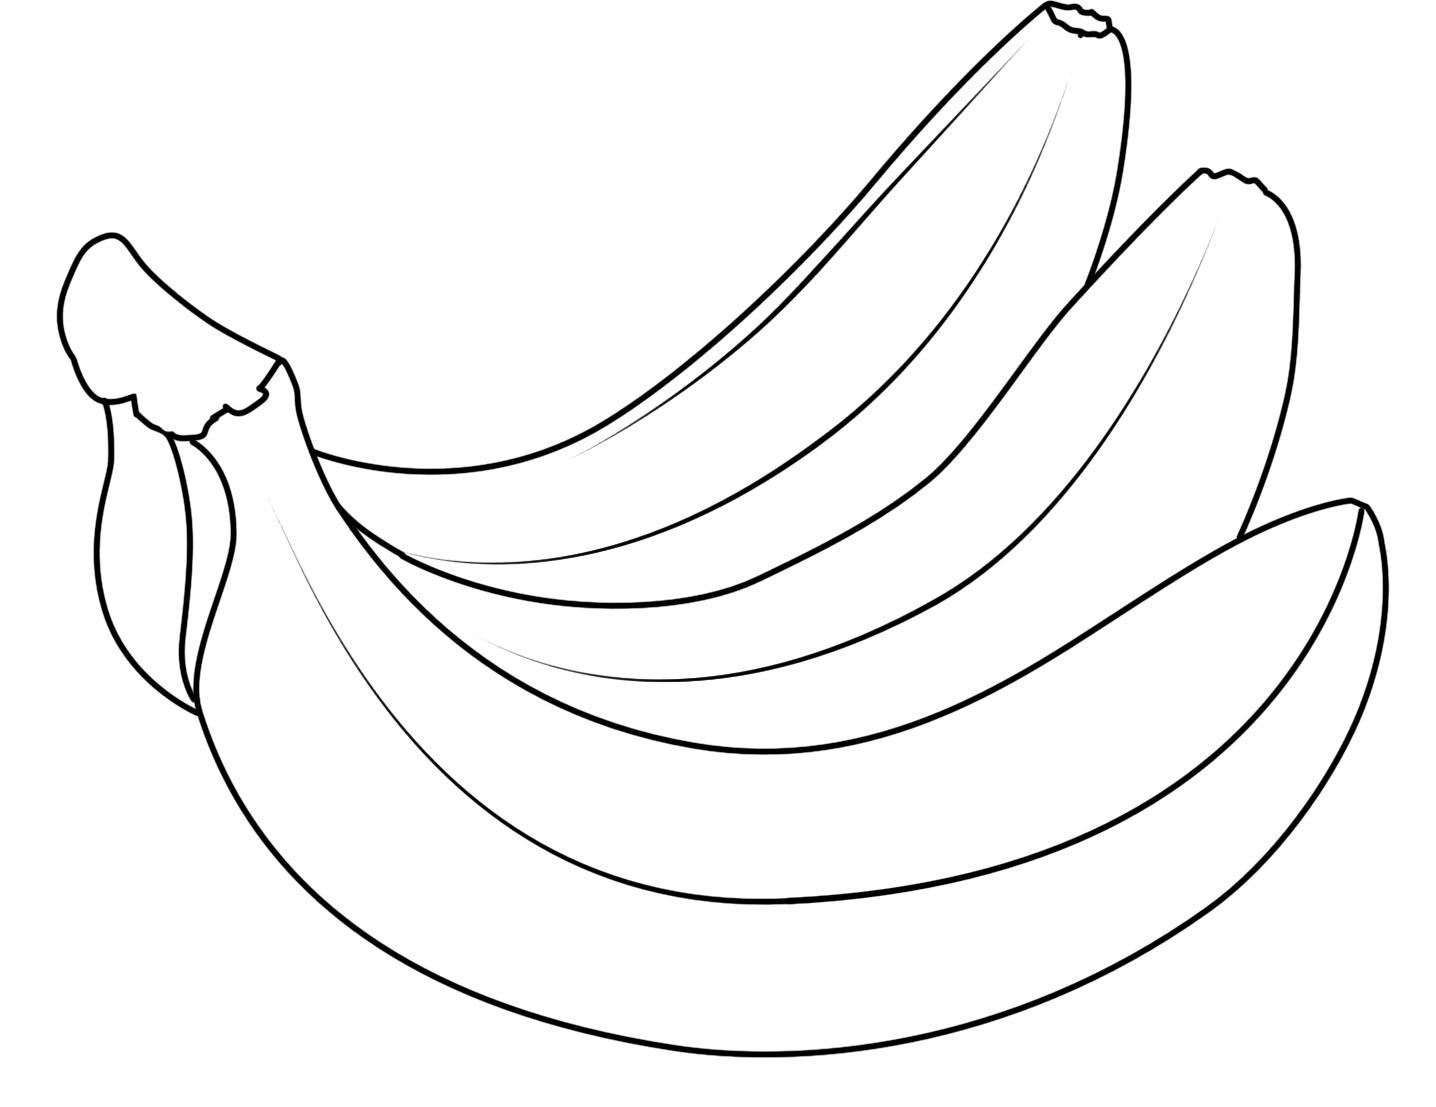 Pictures Three Bananas Fruit Coloring Pages Fruit Coloring Pages Banana Coloring Page Banana Coloring